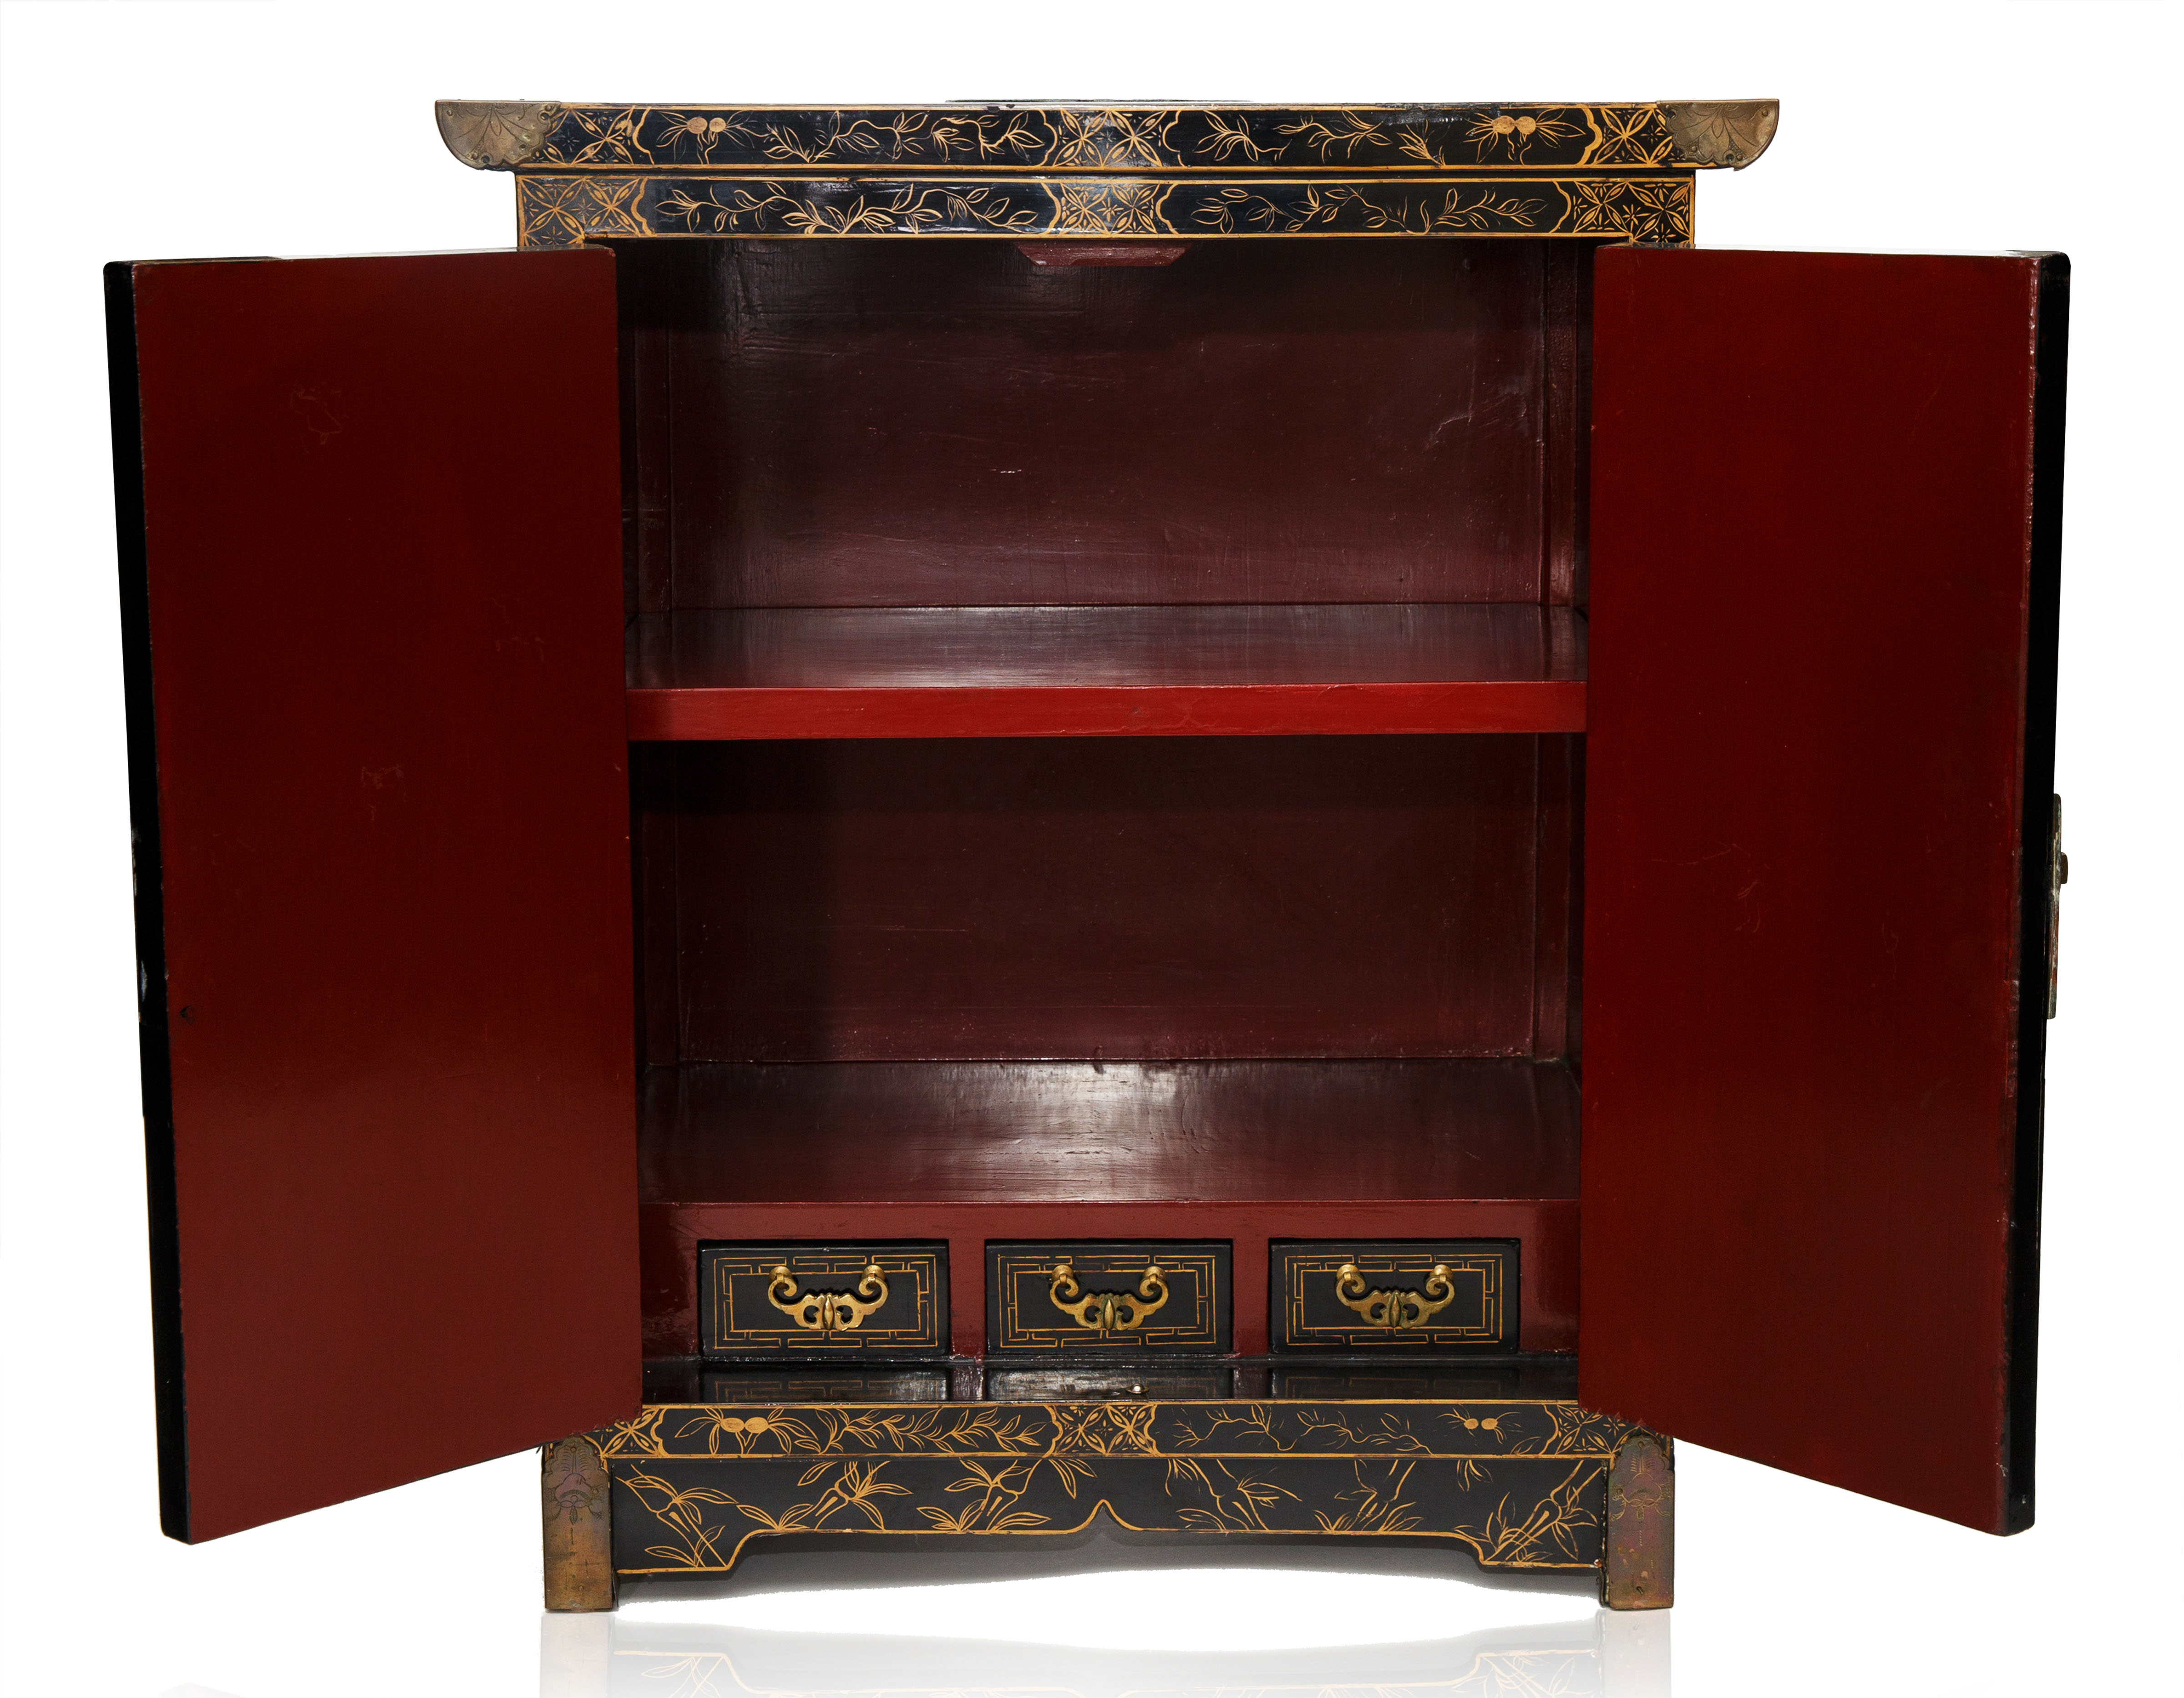 A MEIJI PERIOD JAPANESE EBONISED LACQUER CABINET - Image 3 of 4